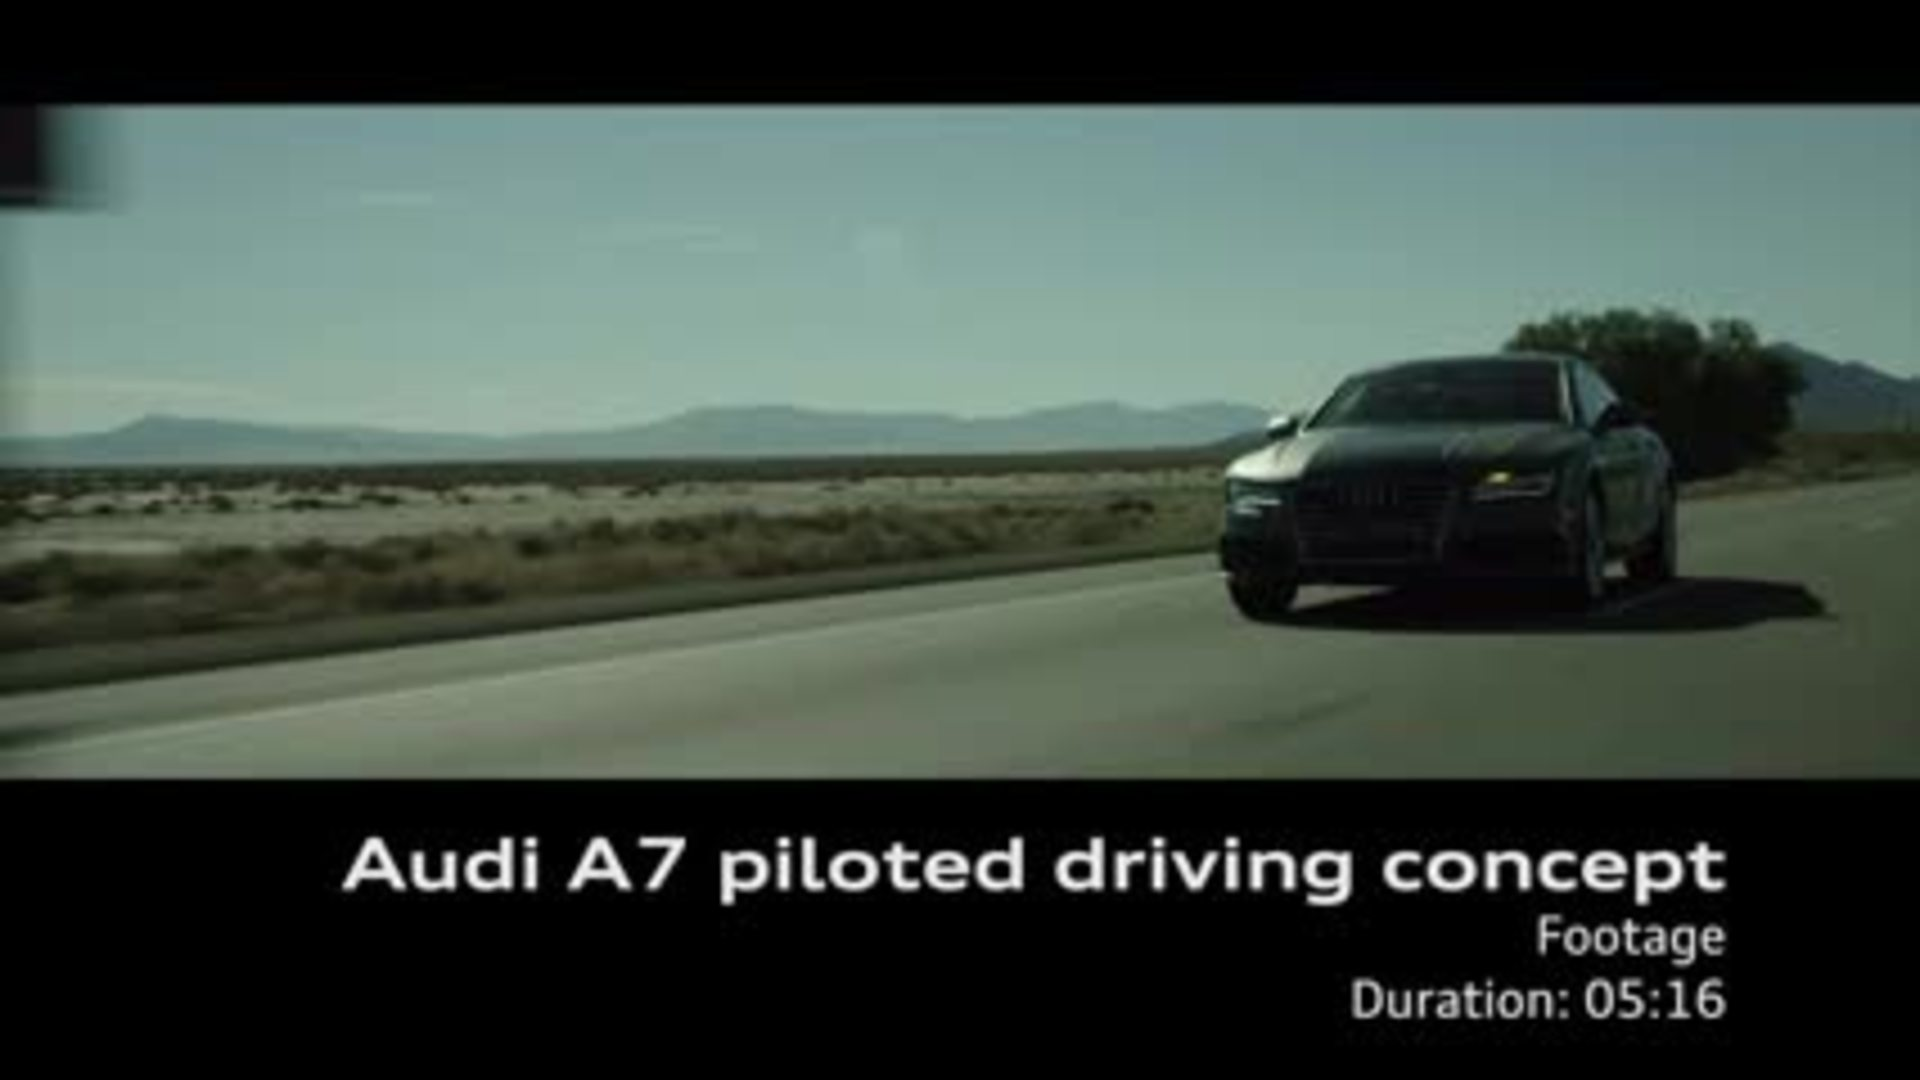 Audi A7 Sportback piloted driving concept - Footage